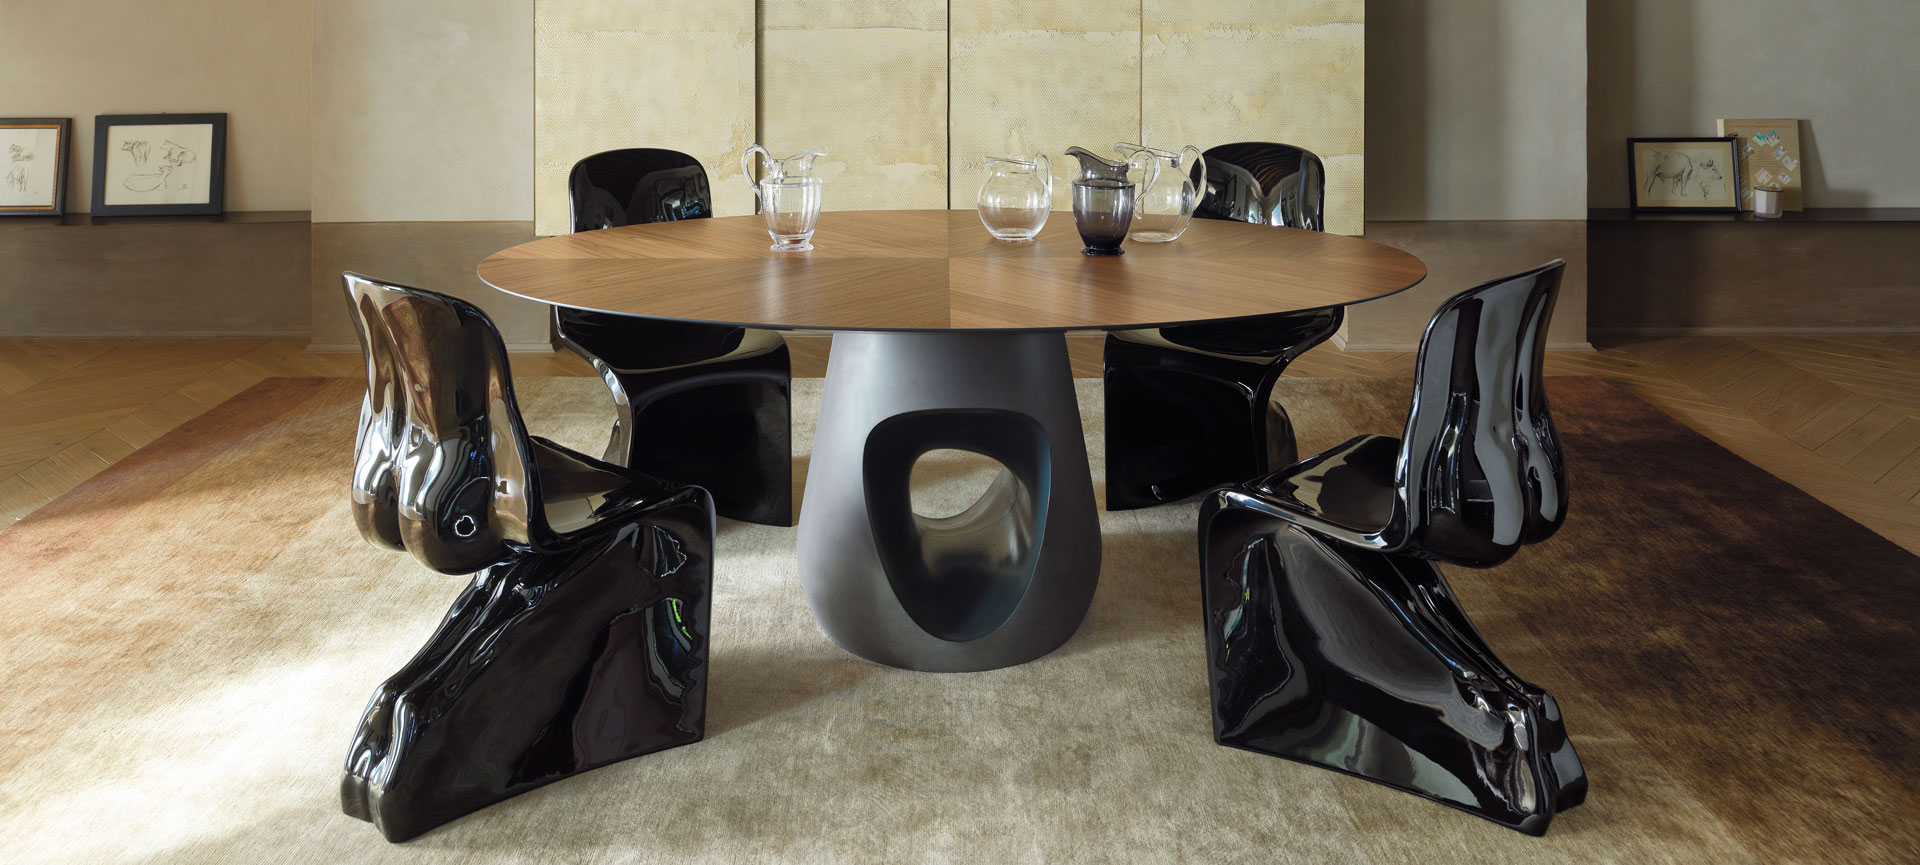 barbara table, hime&her chairs